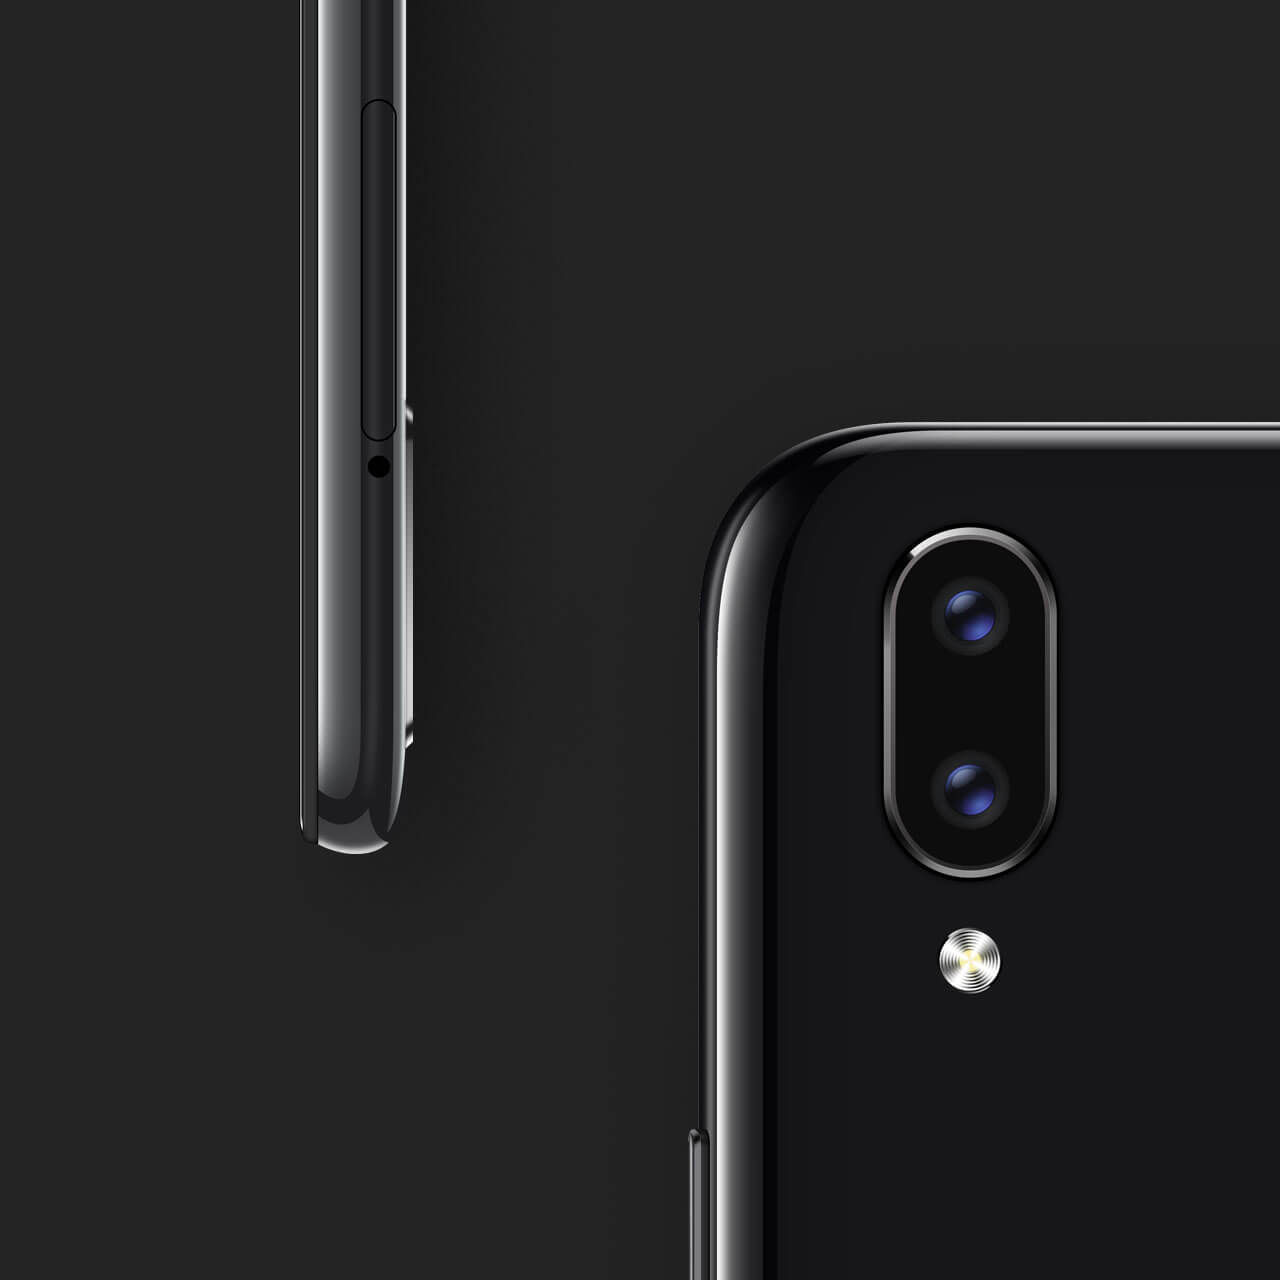 Oppo F7 and Vivo V9 : A comparison